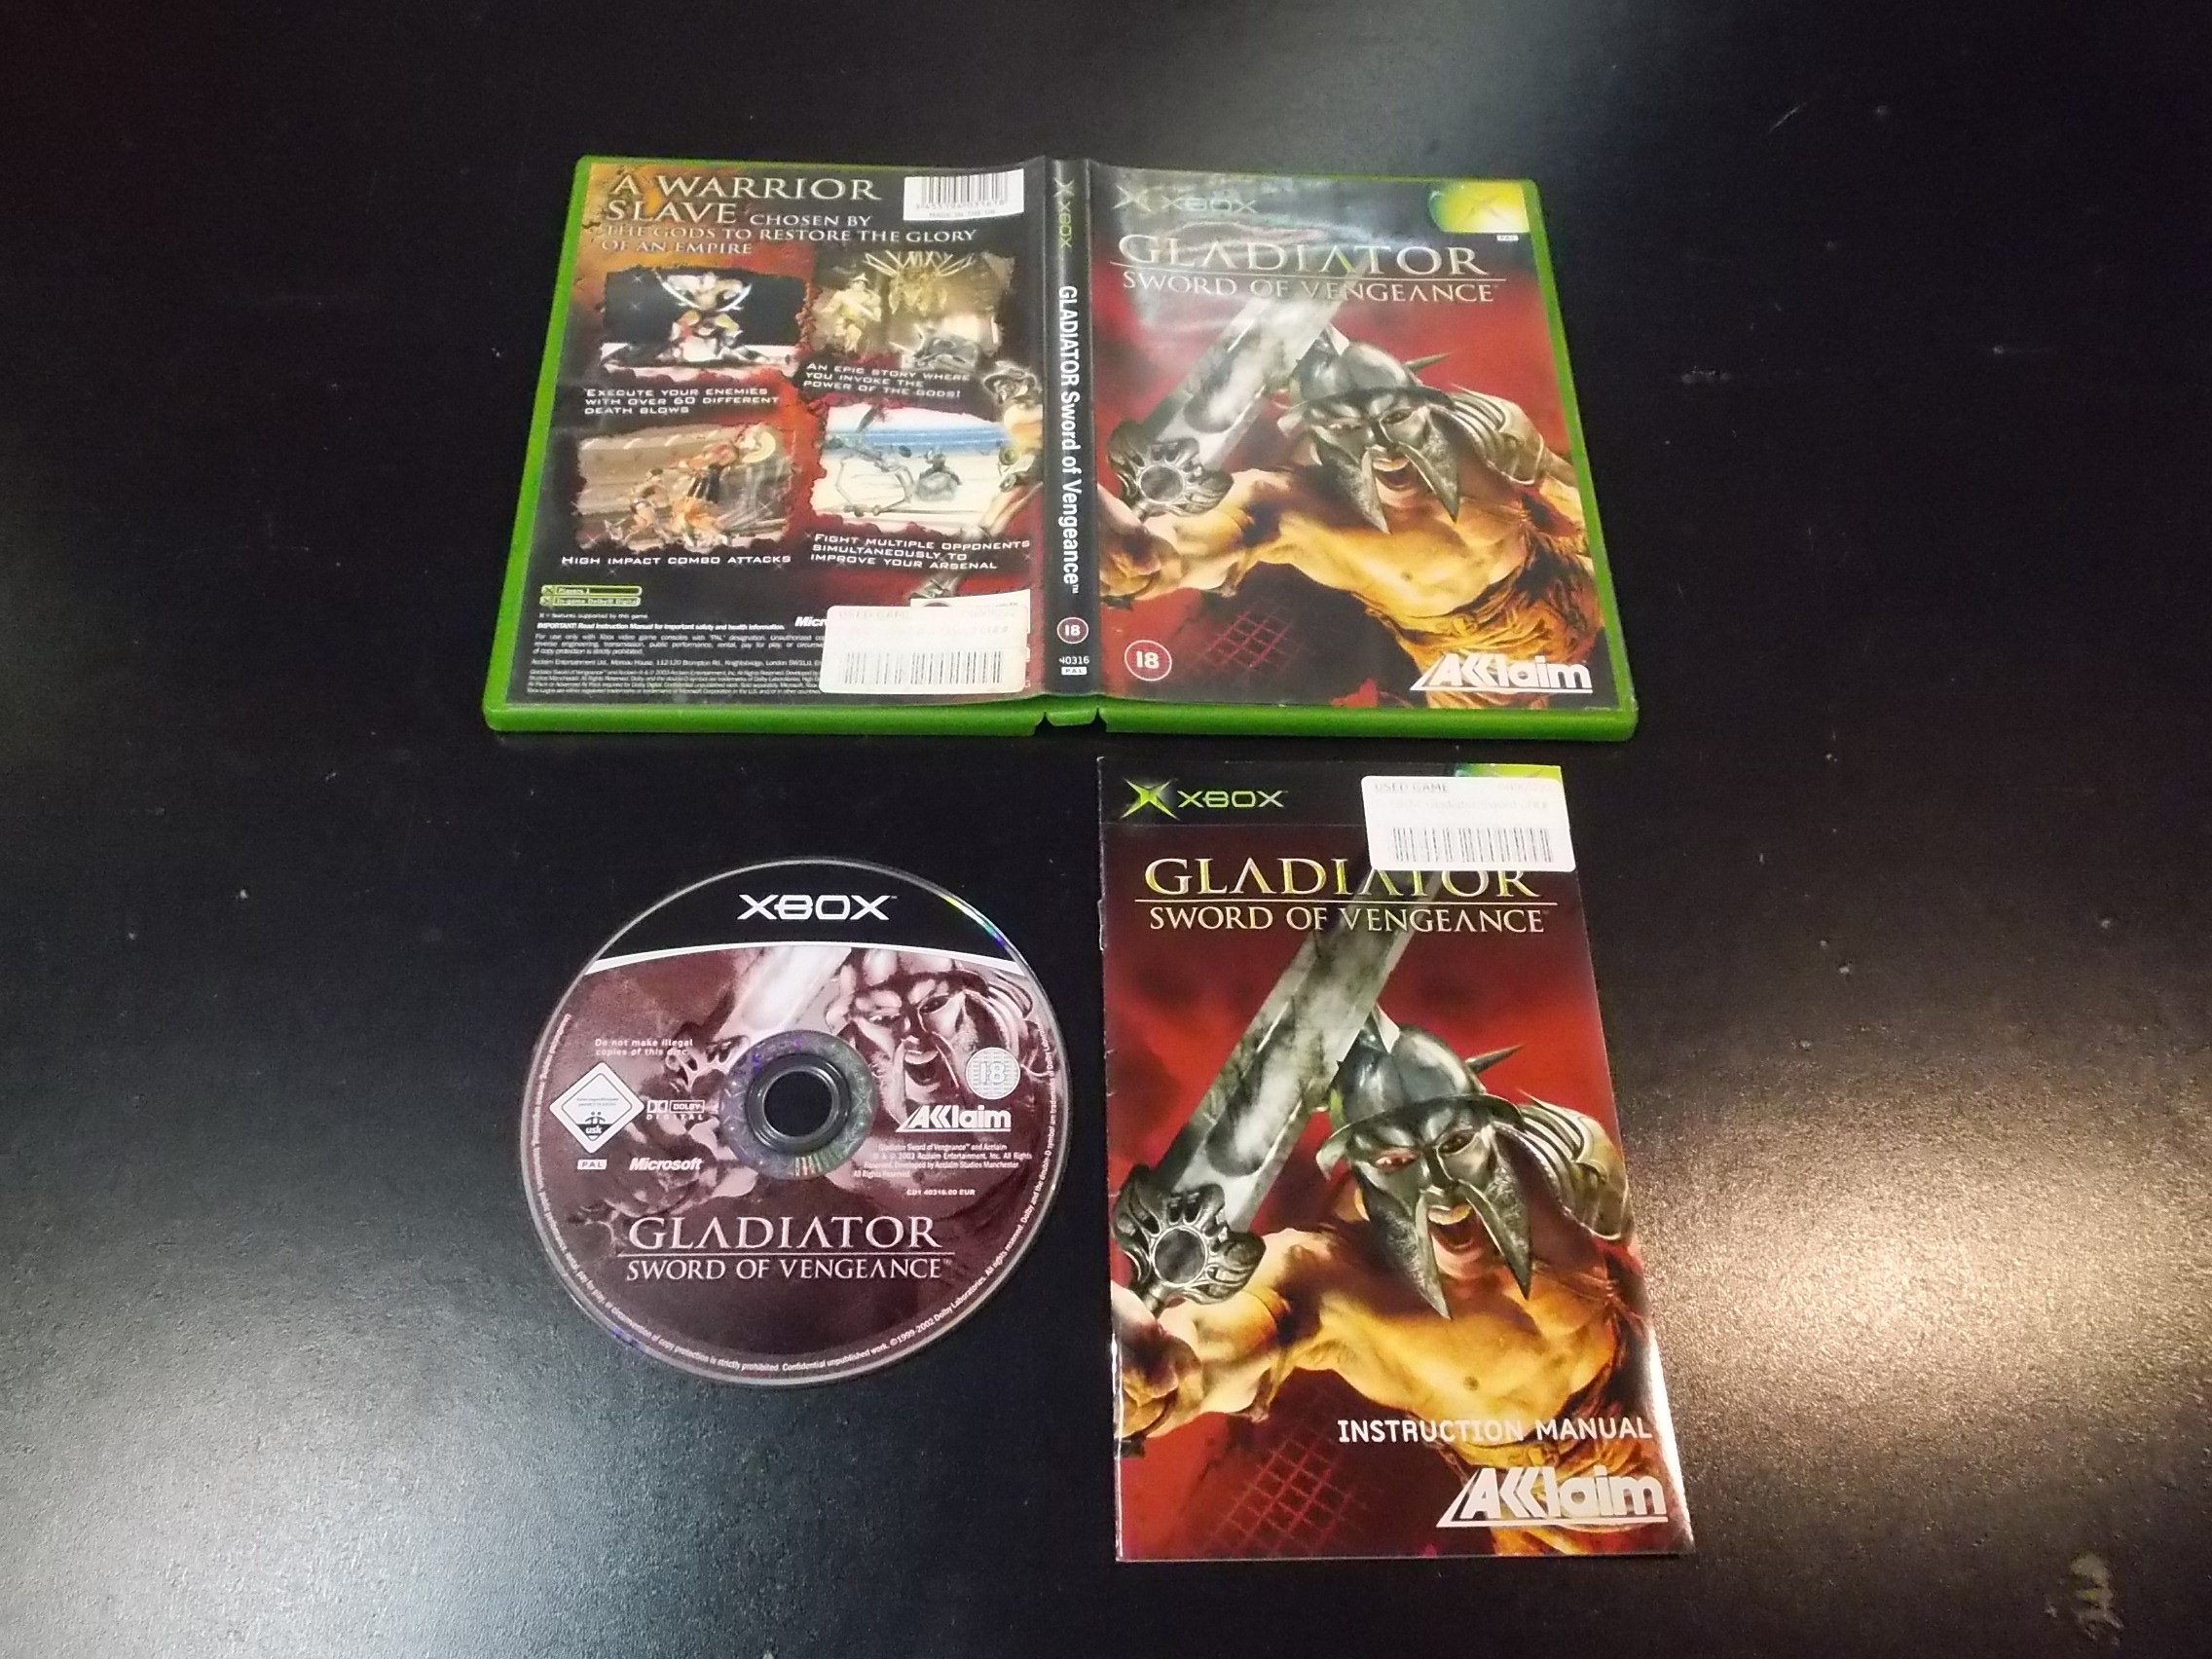 GLADIATOR SWORD OF VENGEANCE - GRA Xbox Classic